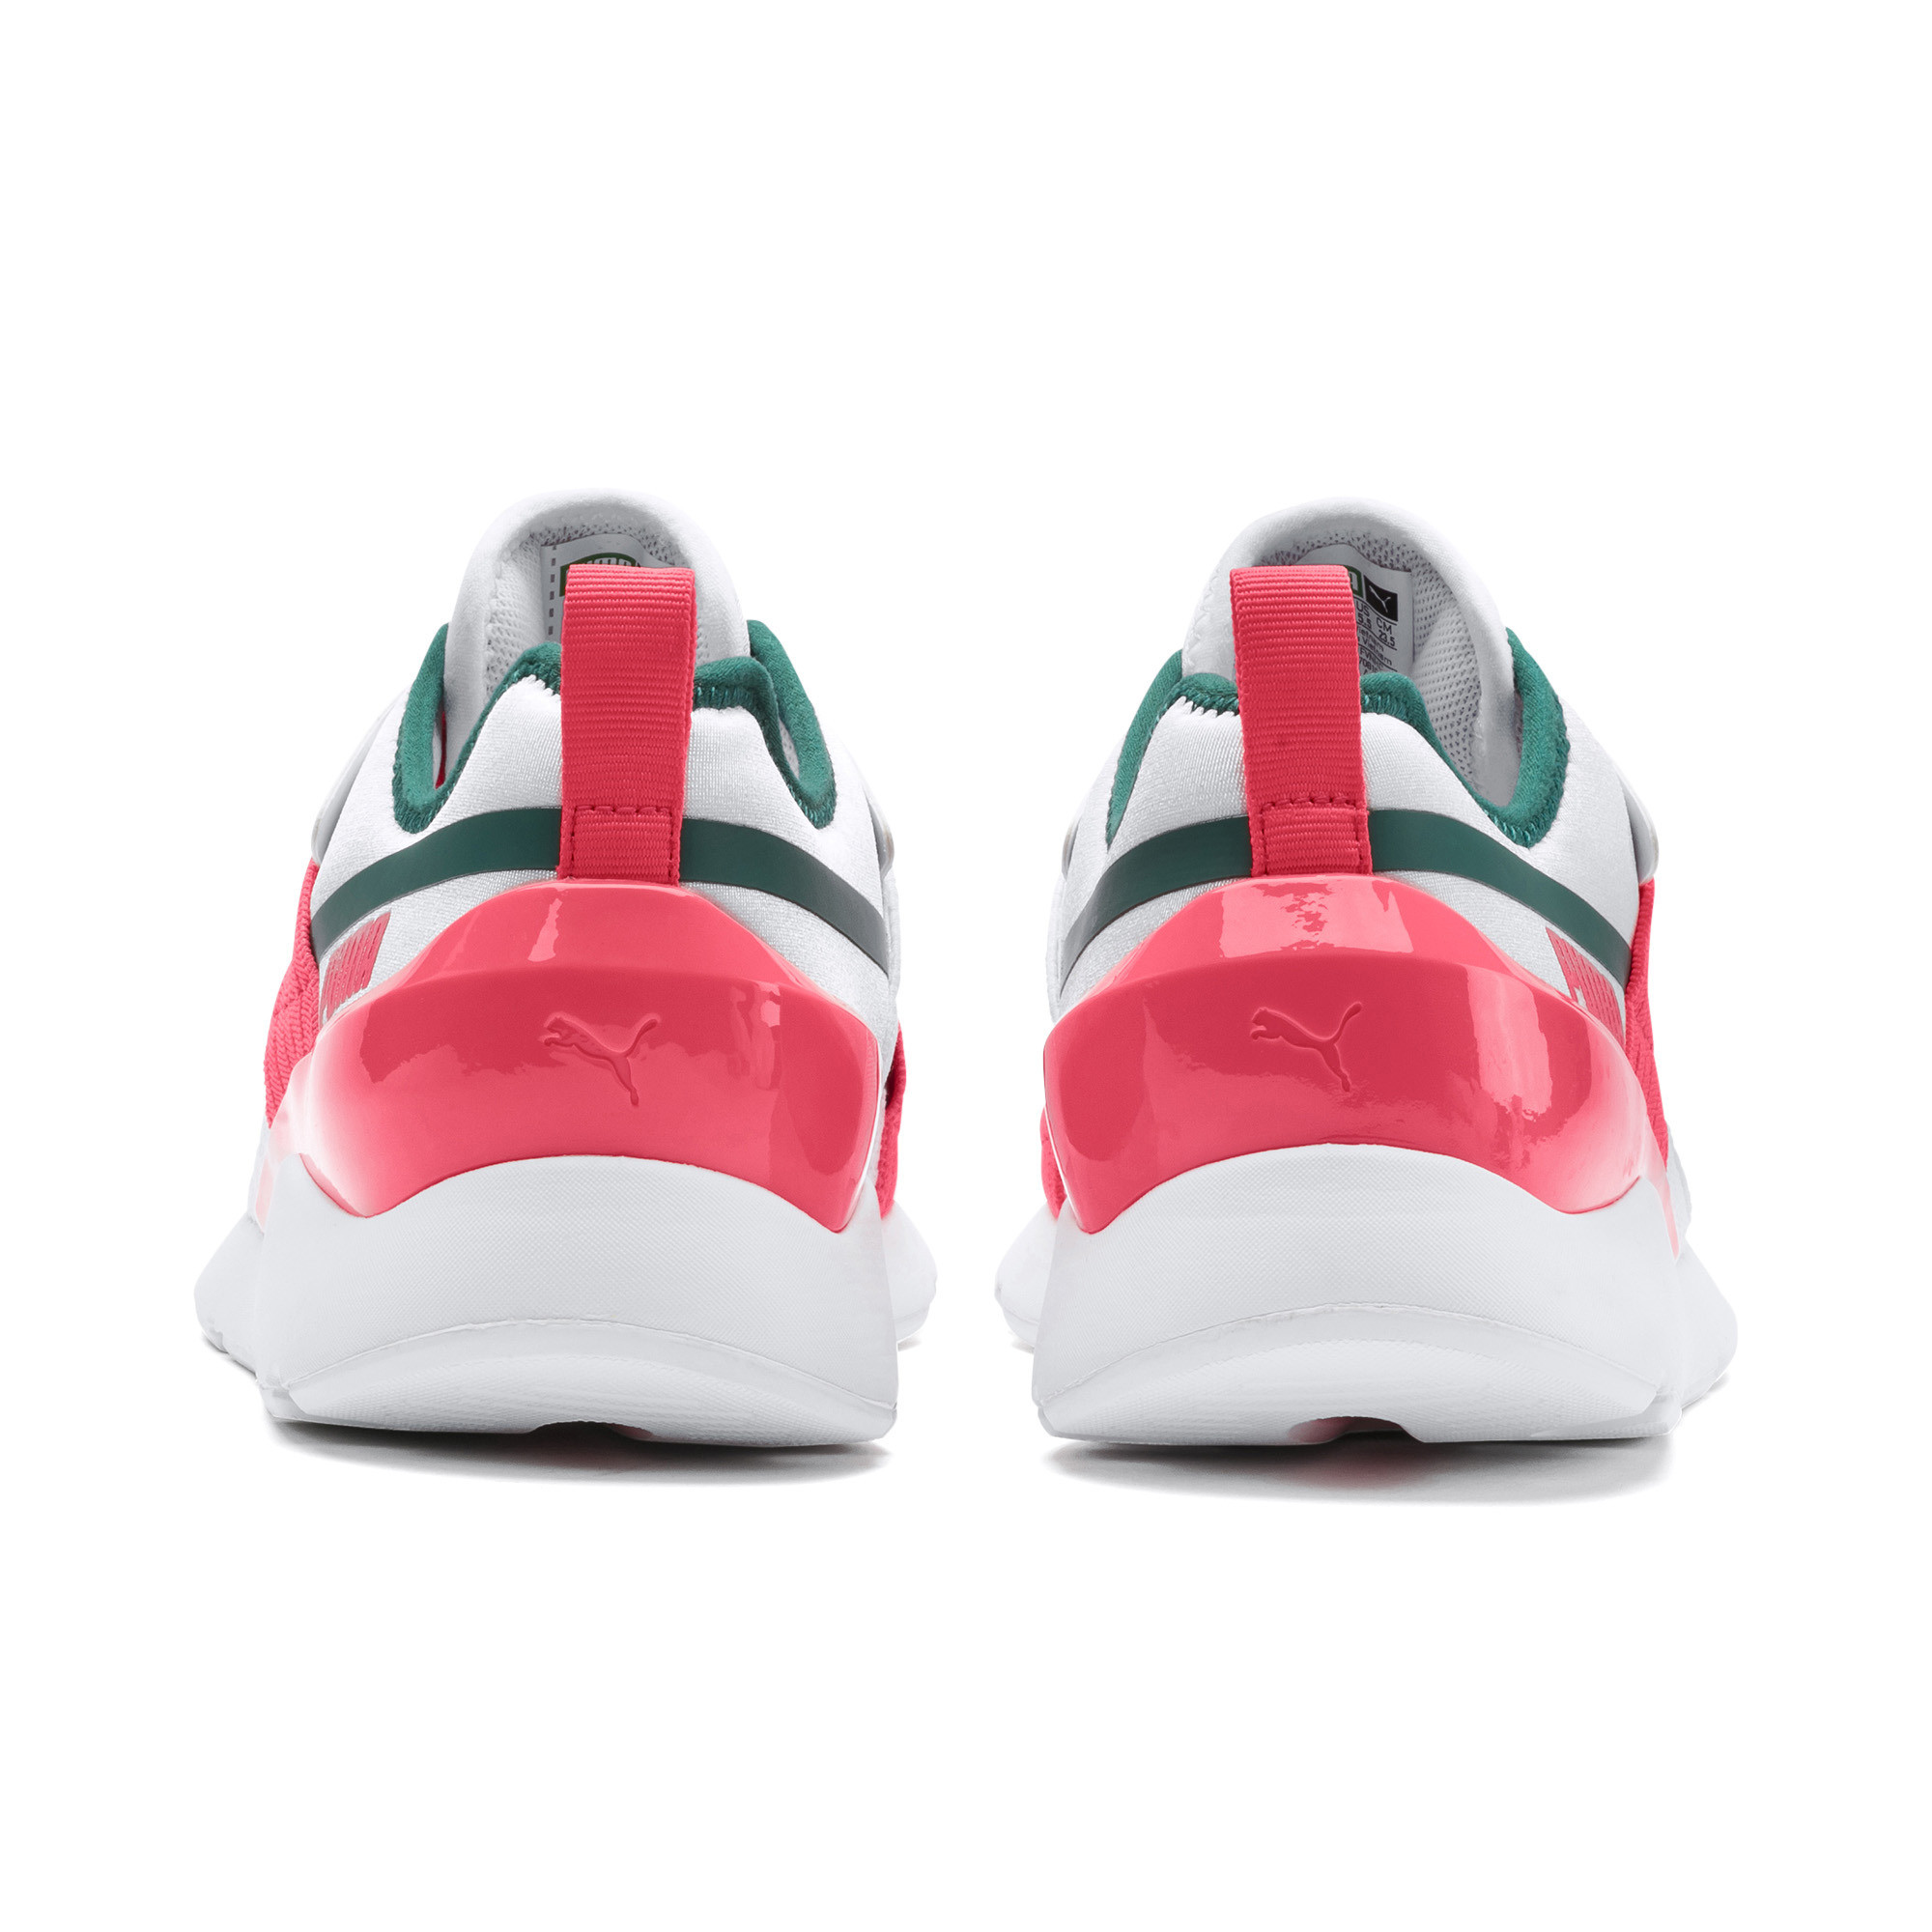 PUMA-Muse-X-2-Women-039-s-Sneakers-Women-Shoe-Evolution thumbnail 3